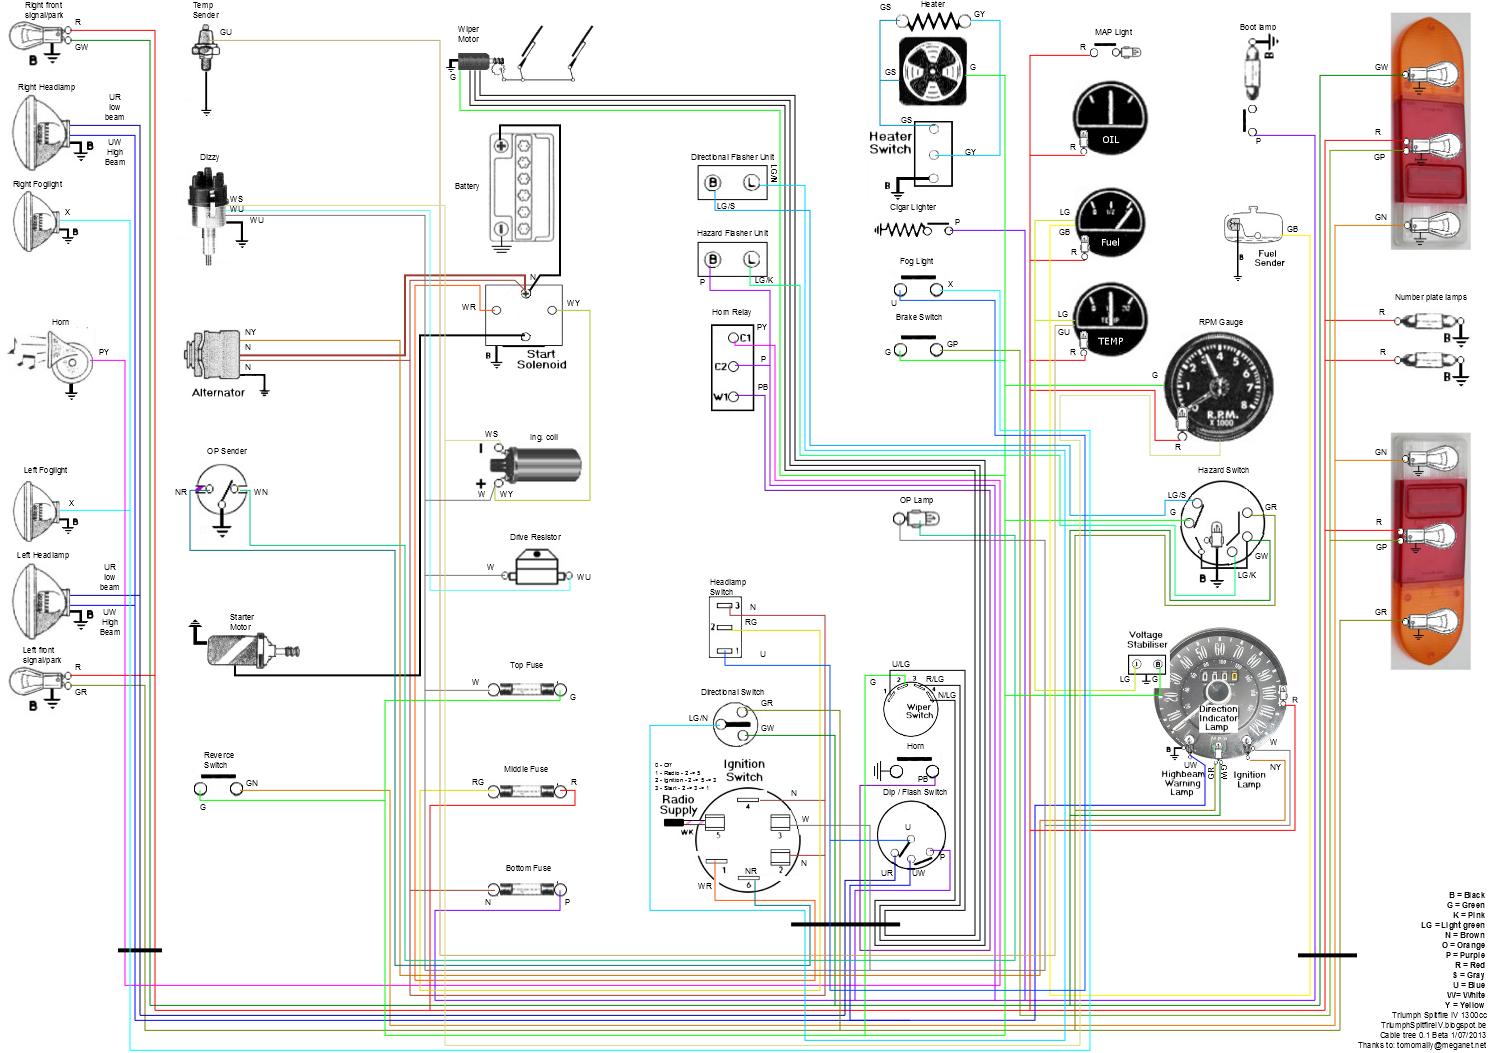 Tr6 Wiring Diagram For 73 - Unlimited Wiring Diagram on sincgars radio configurations diagrams, series and parallel circuits diagrams, pinout diagrams, internet of things diagrams, switch diagrams, troubleshooting diagrams, electronic circuit diagrams, honda motorcycle repair diagrams, lighting diagrams, gmc fuse box diagrams, battery diagrams, smart car diagrams, led circuit diagrams, engine diagrams, transformer diagrams, hvac diagrams, electrical diagrams, friendship bracelet diagrams, motor diagrams,